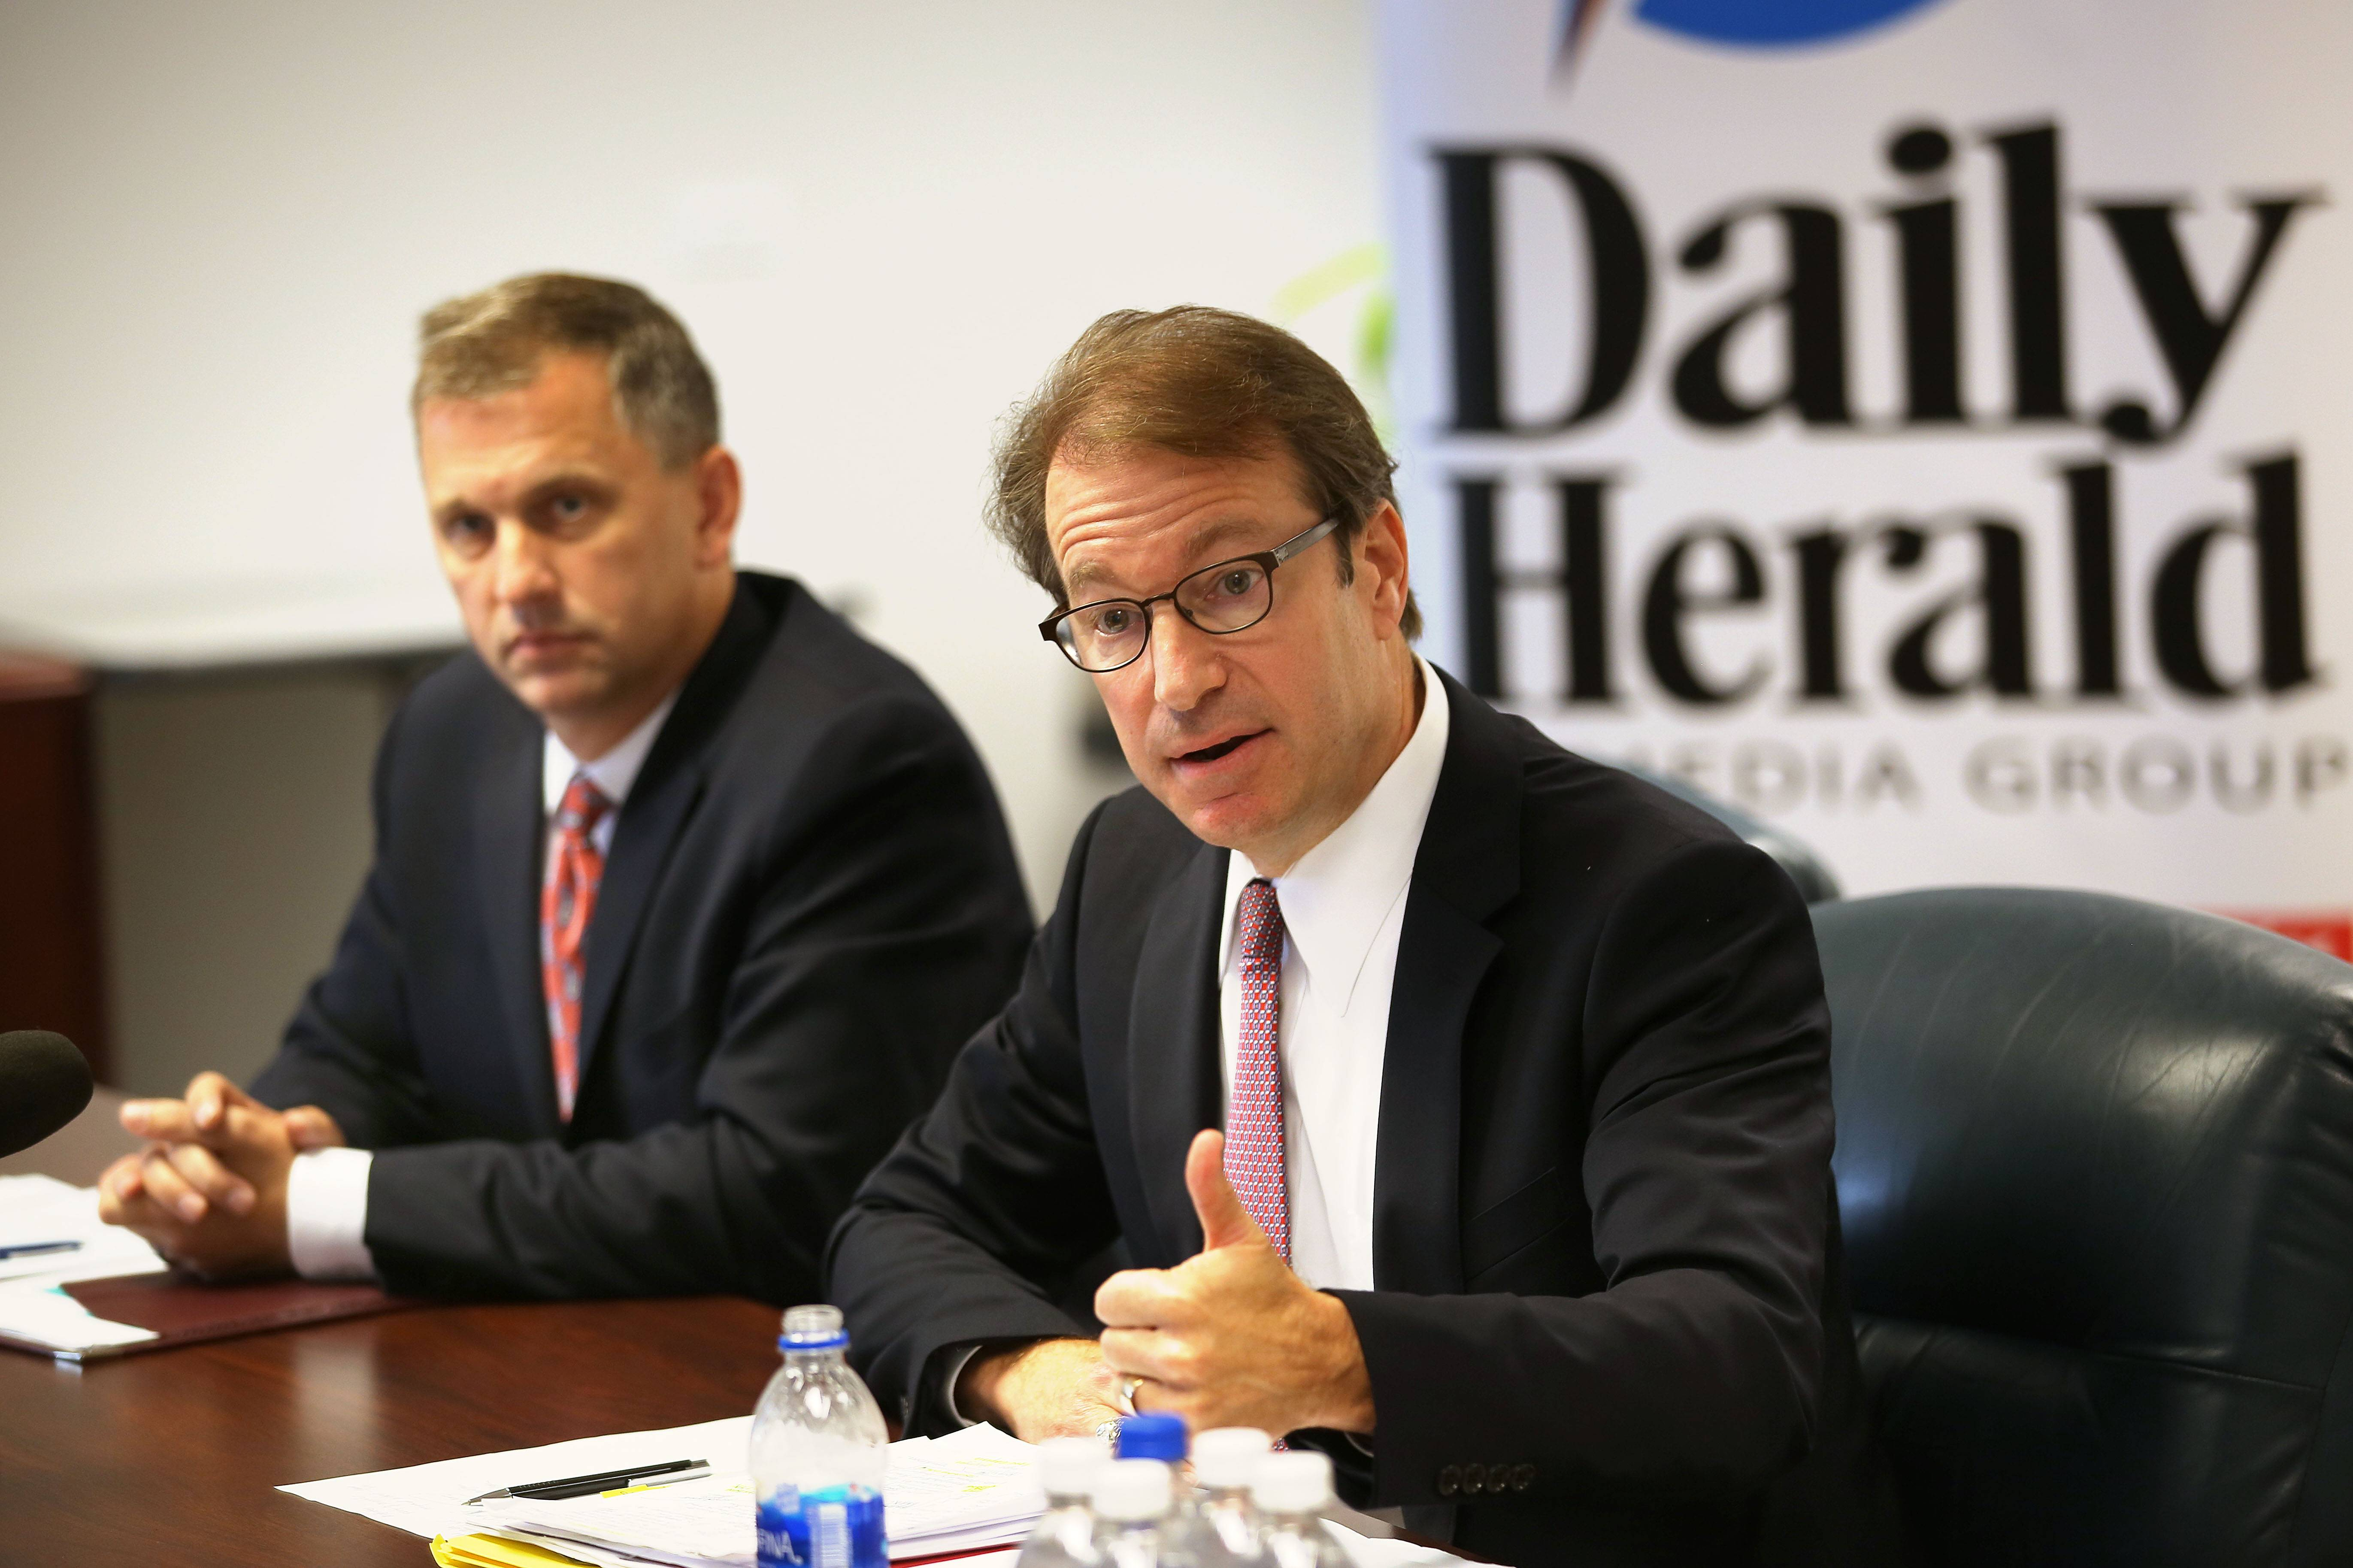 Roskam, Casten spar over voting like, acting like and impeaching President Trump